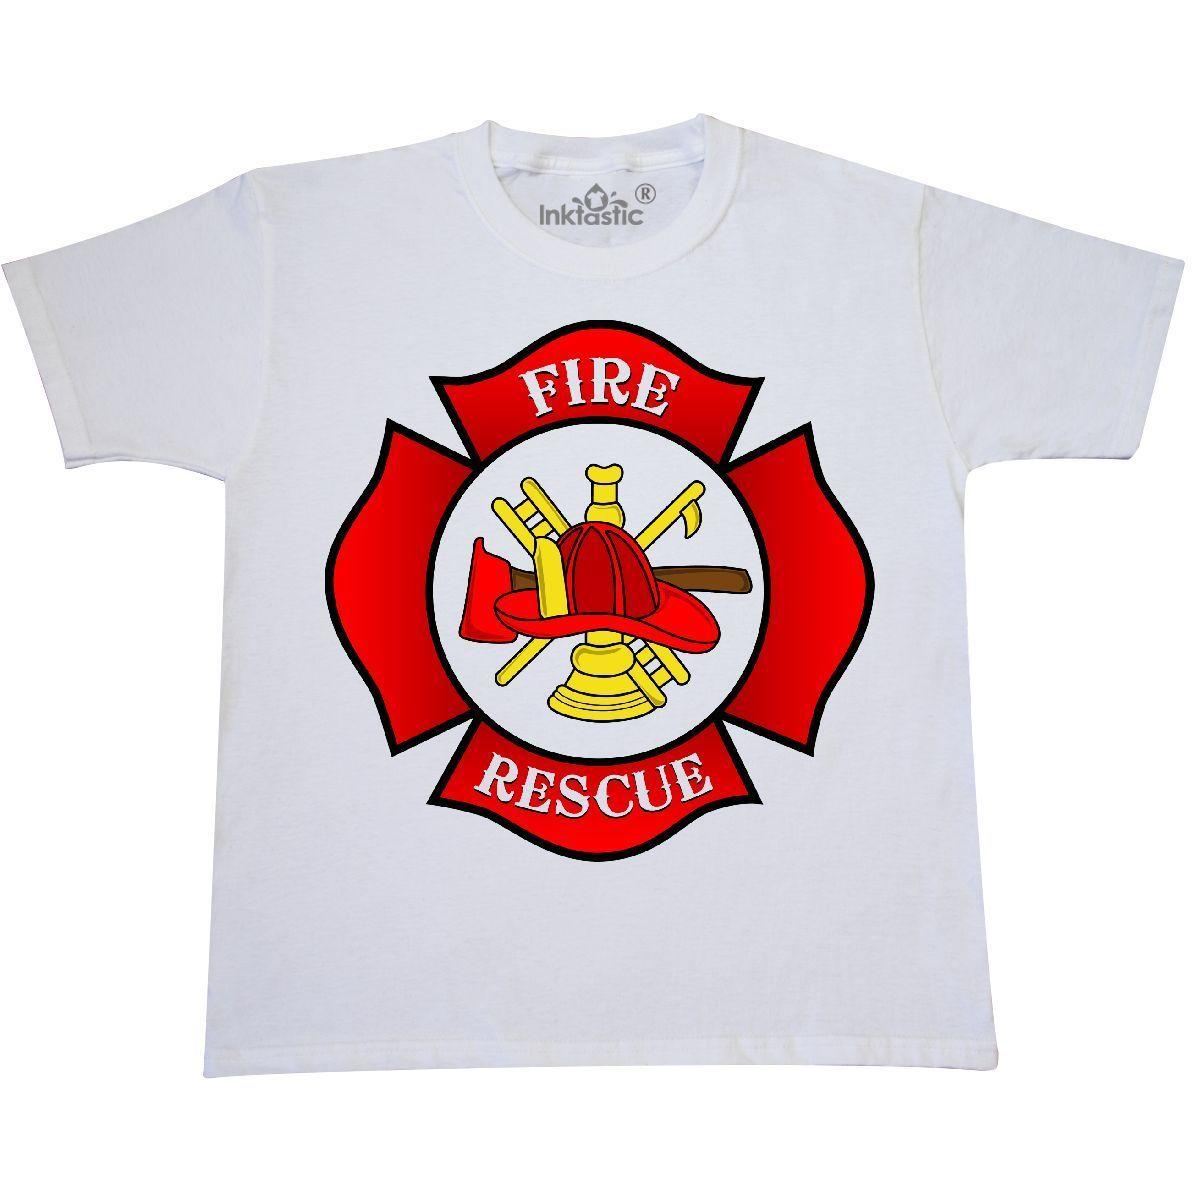 c54b8fb31 Inktastic Maltese Cross Firefighter Youth T Shirt Fireman Rescue Fire And  Team Cool Casual Pride T Shirt Men Unisex Fashion Tshirt Purchase T Shirts  Silly T ...